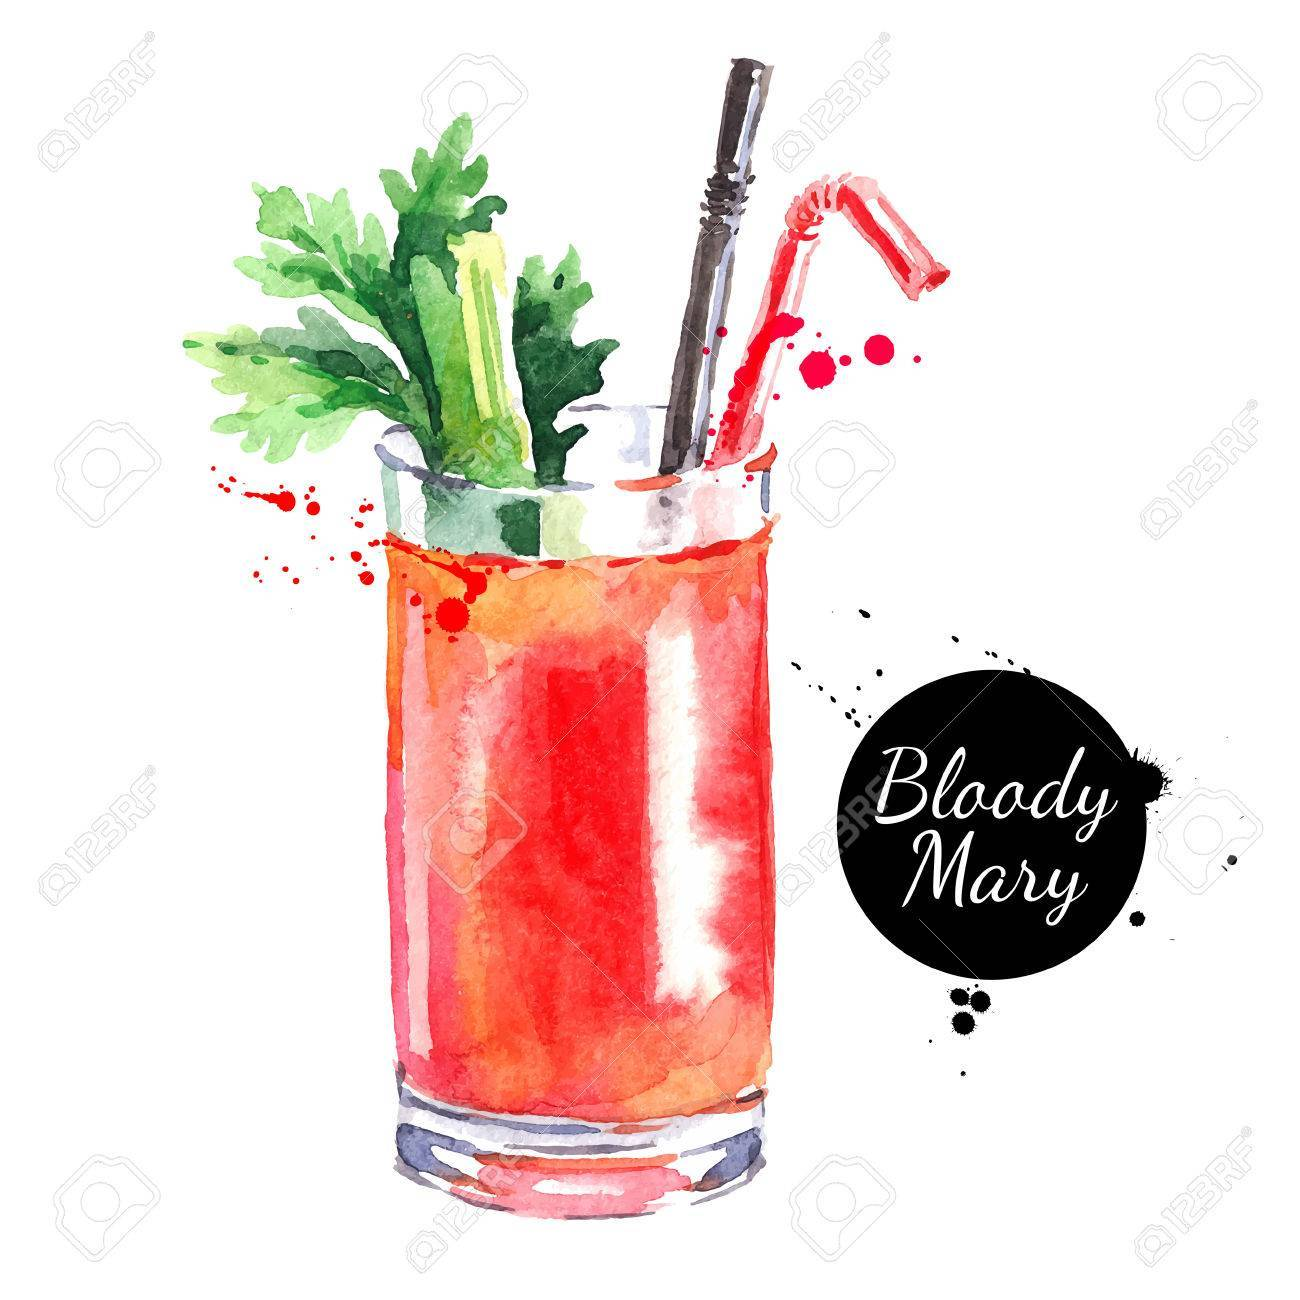 Bloody mary clipart picture black and white download Hand drawn sketch watercolor cocktail Bloody Mary. Vector isolat ... picture black and white download